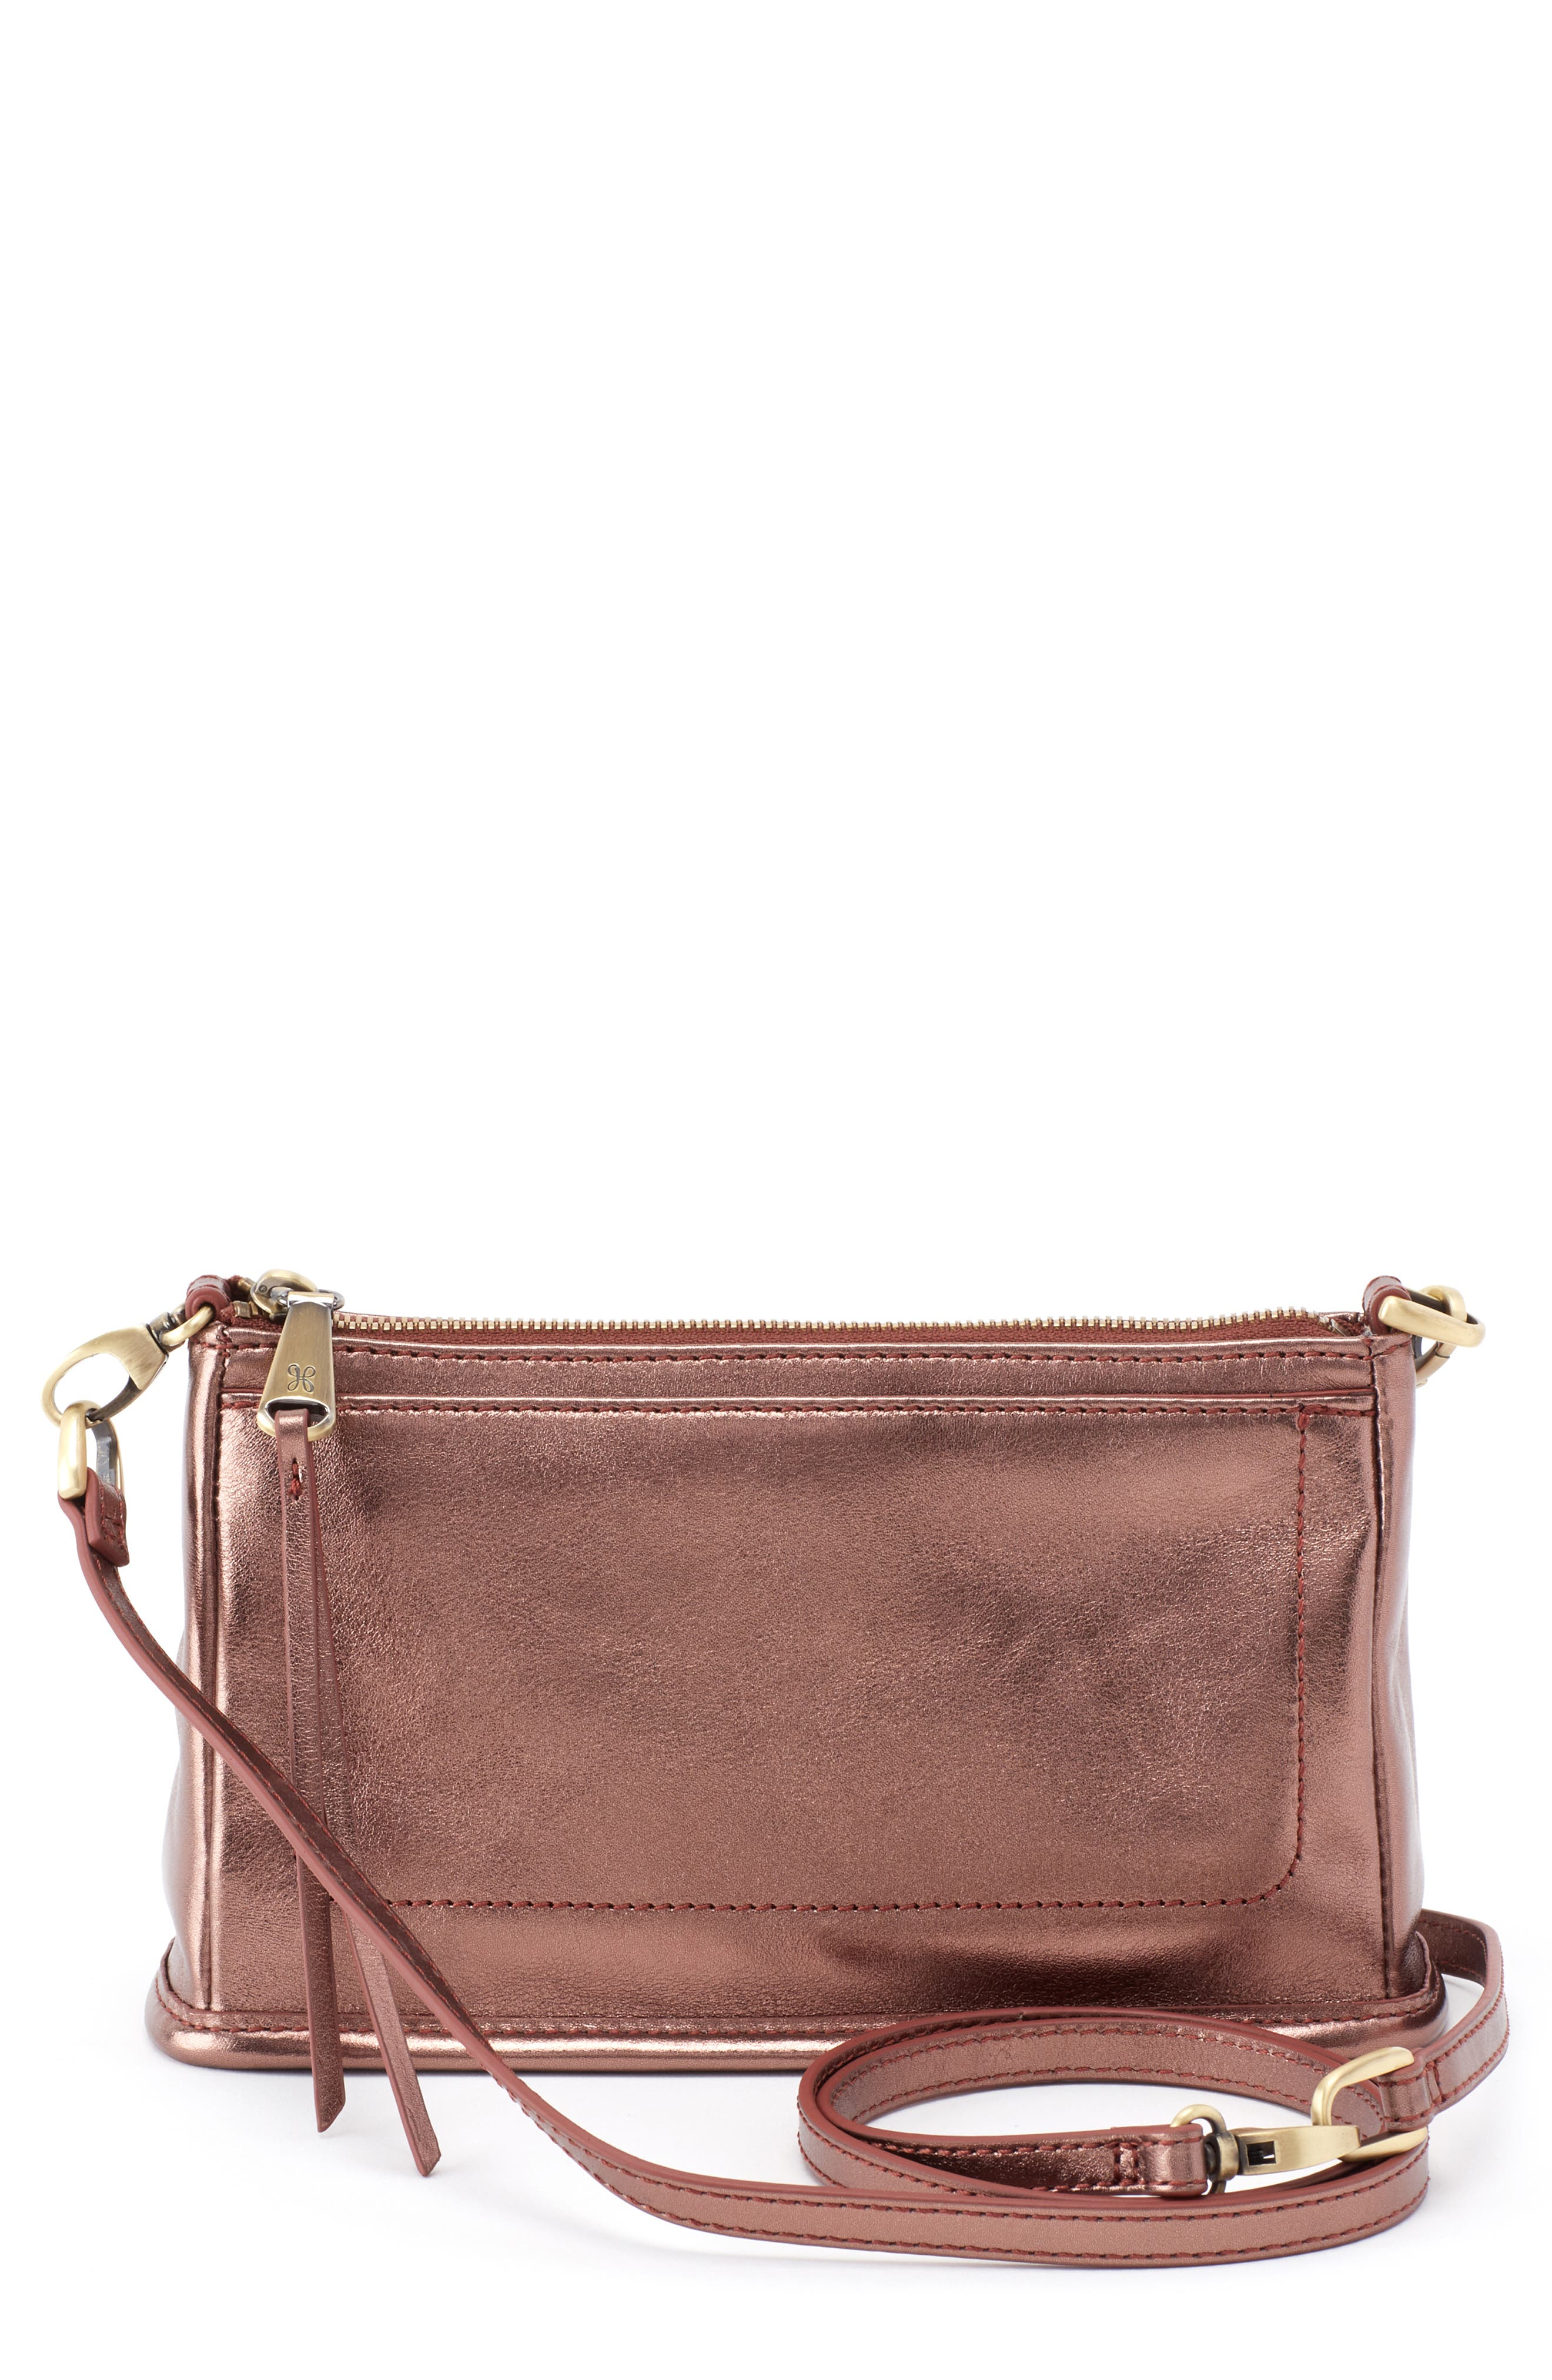 Small Cadence Crossbody Bag,                             Main thumbnail 1, color,                             246